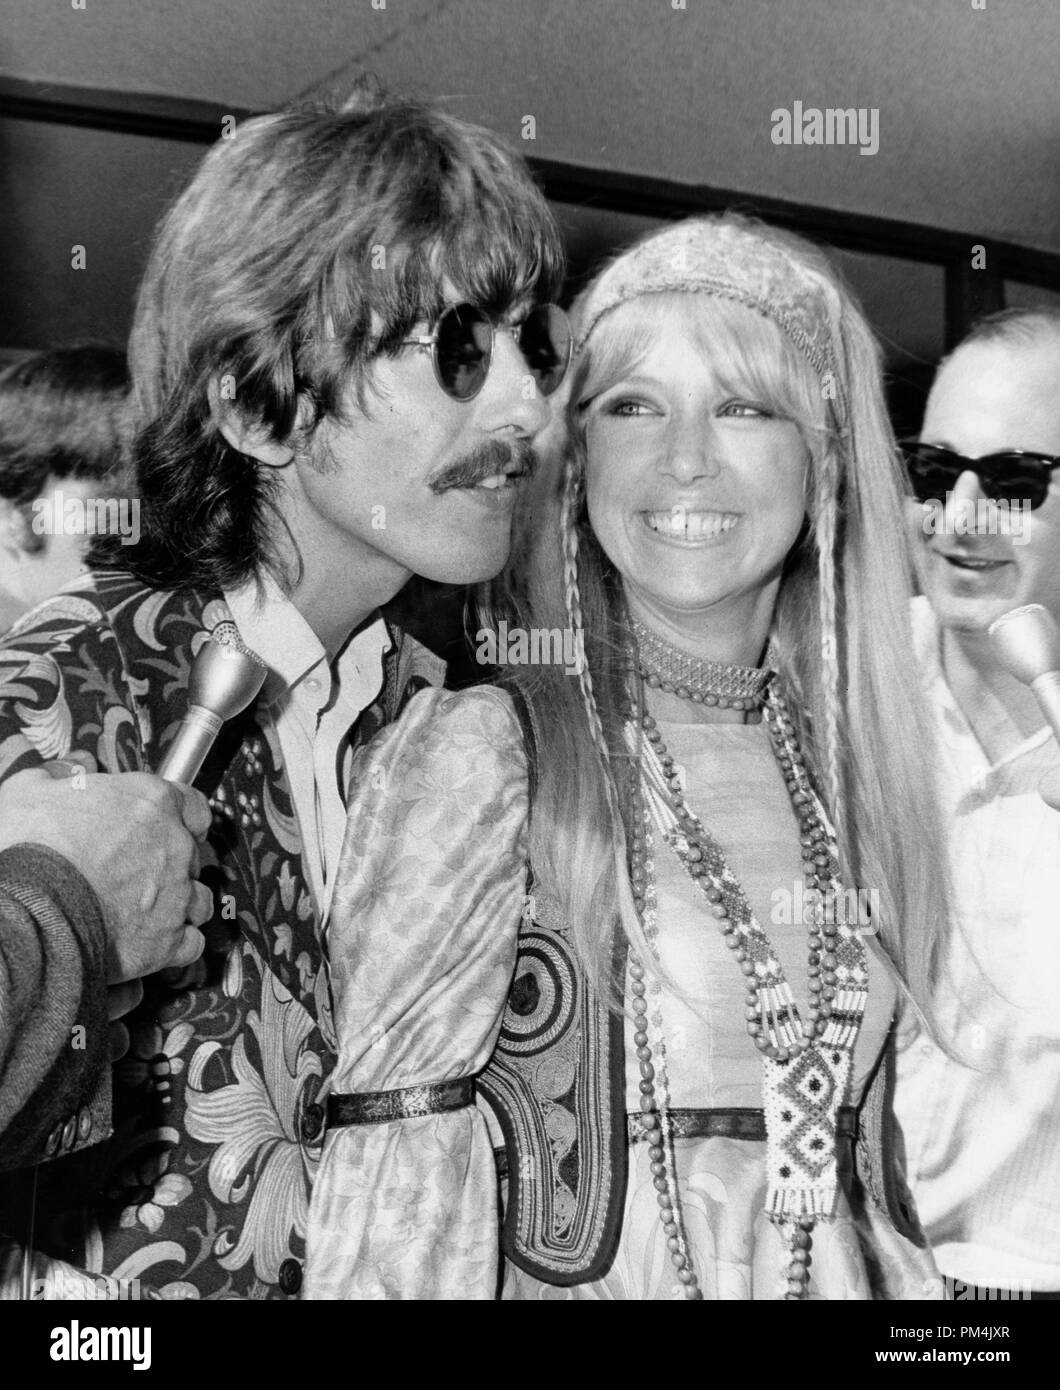 Beatle George Harrison and wife Pattie,1969. File Reference #1013_090 THA © JRC /The Hollywood Archive - All Rights Reserved. - Stock Image